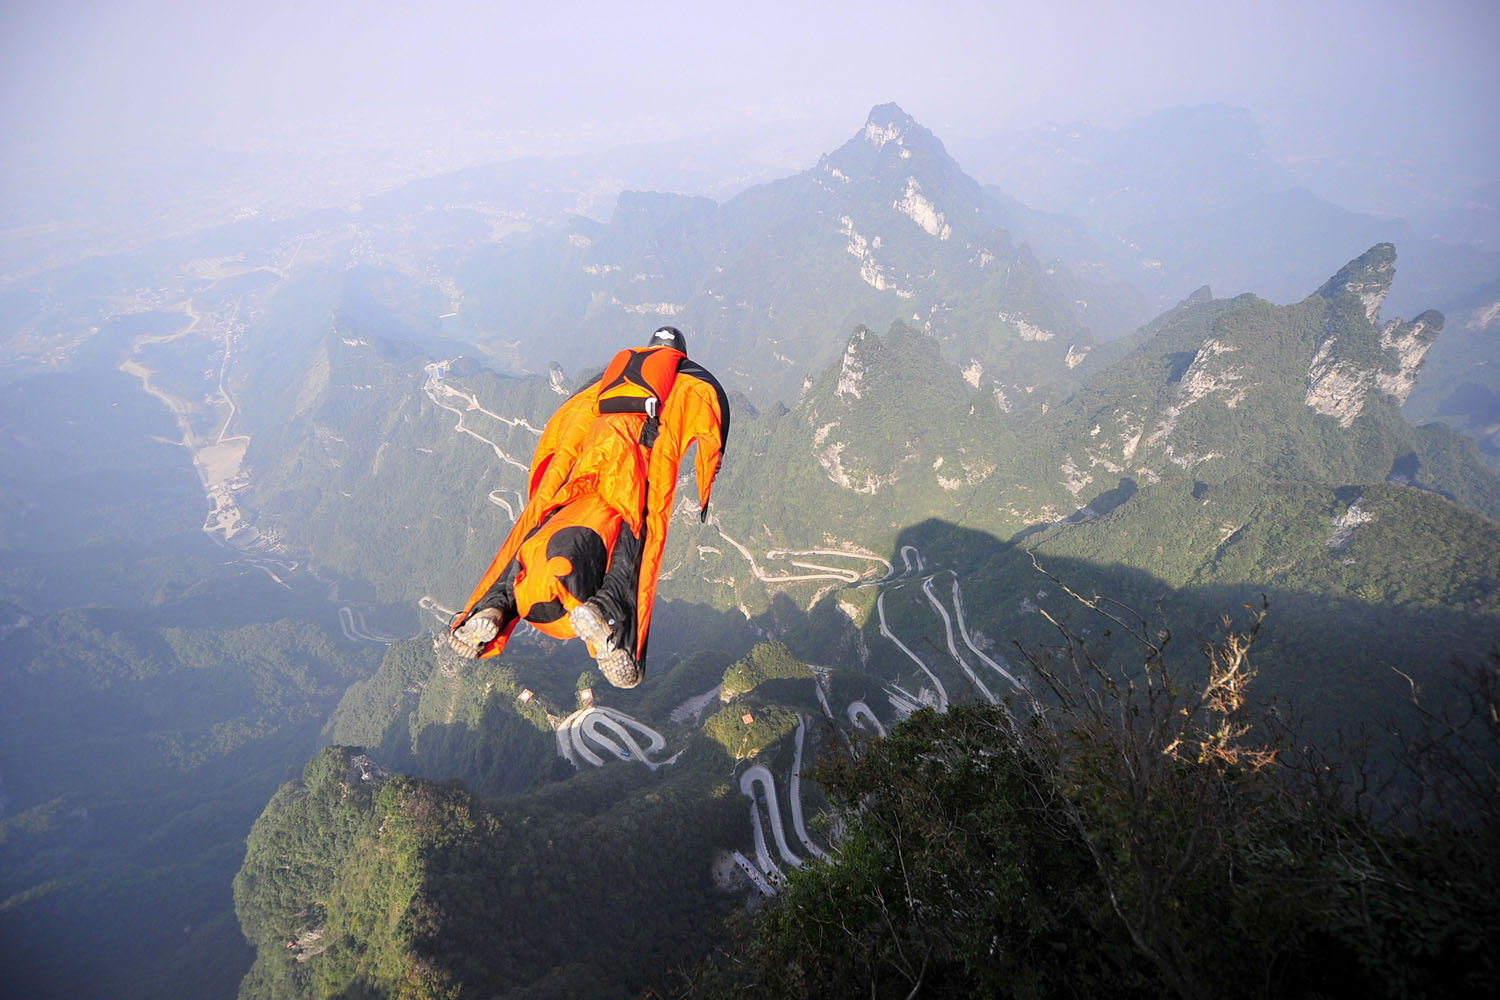 Oct. 8, 2013. Hungarian wingsuit flyer Victor Kovats jumps into a valley in Tianmen Mountain National Forest Park in Zhangjiajie, central China's Hunan province.